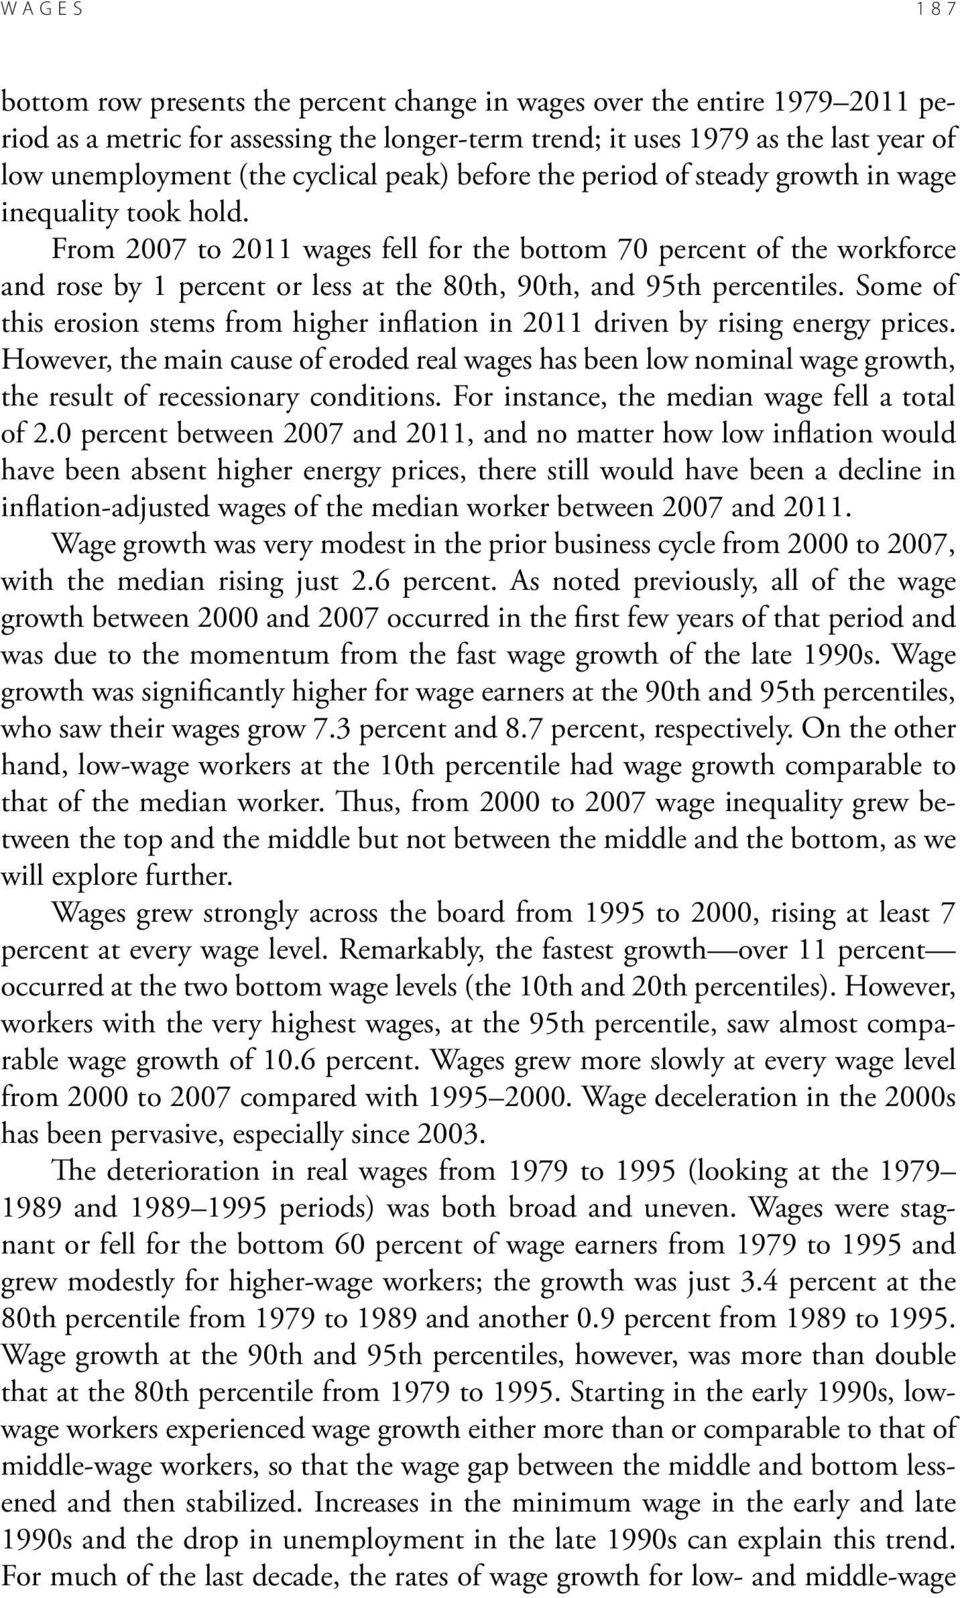 From 2007 to 2011 wages fell for the bottom 70 percent of the workforce and rose by 1 percent or less at the 80th, 90th, and 95th percentiles.